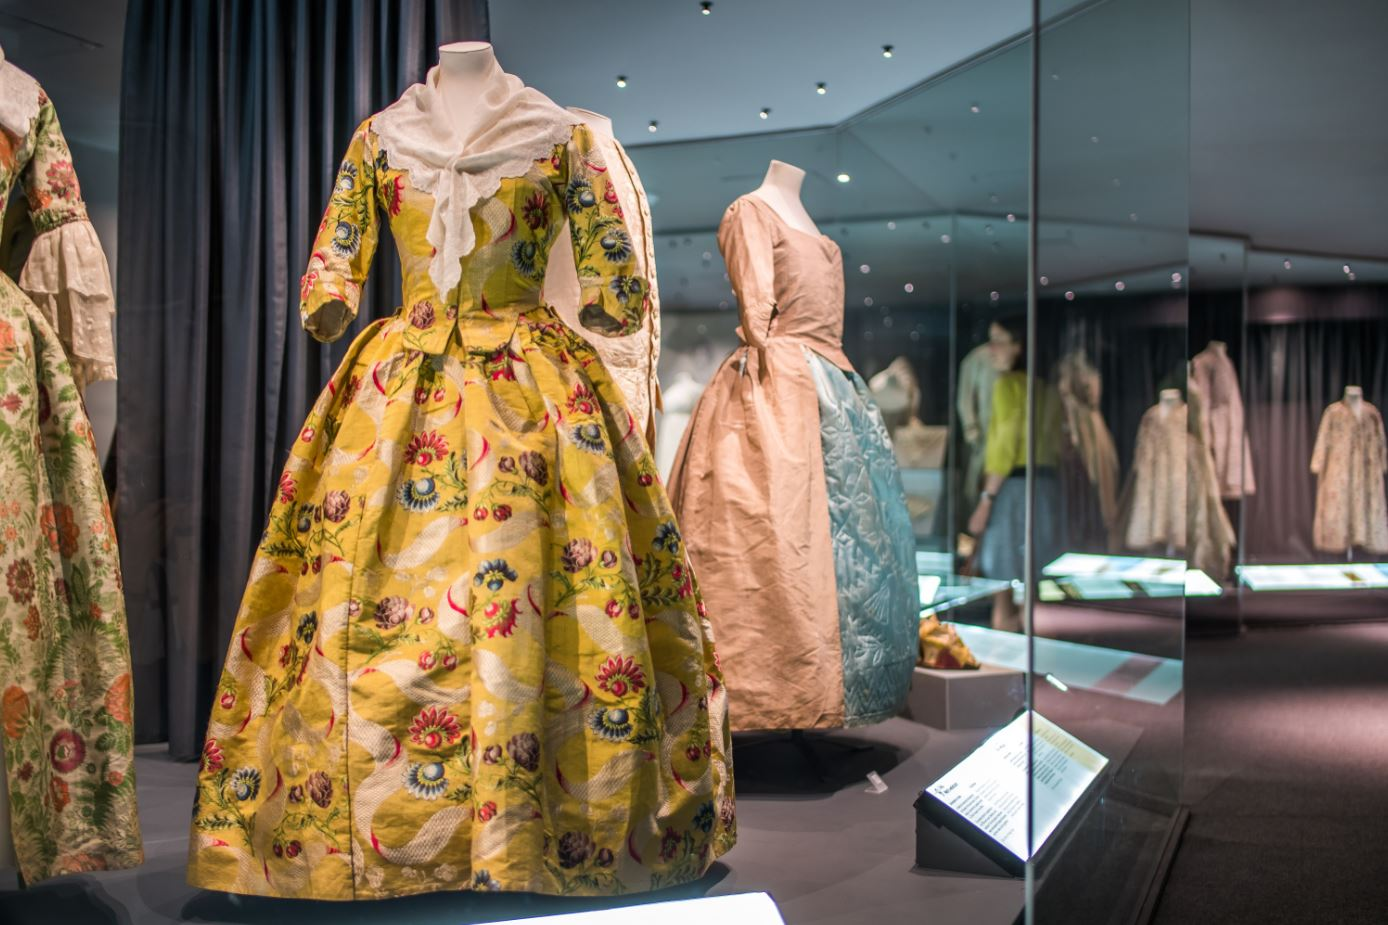 Christian Dior Exhibition and Fashion Tour To London